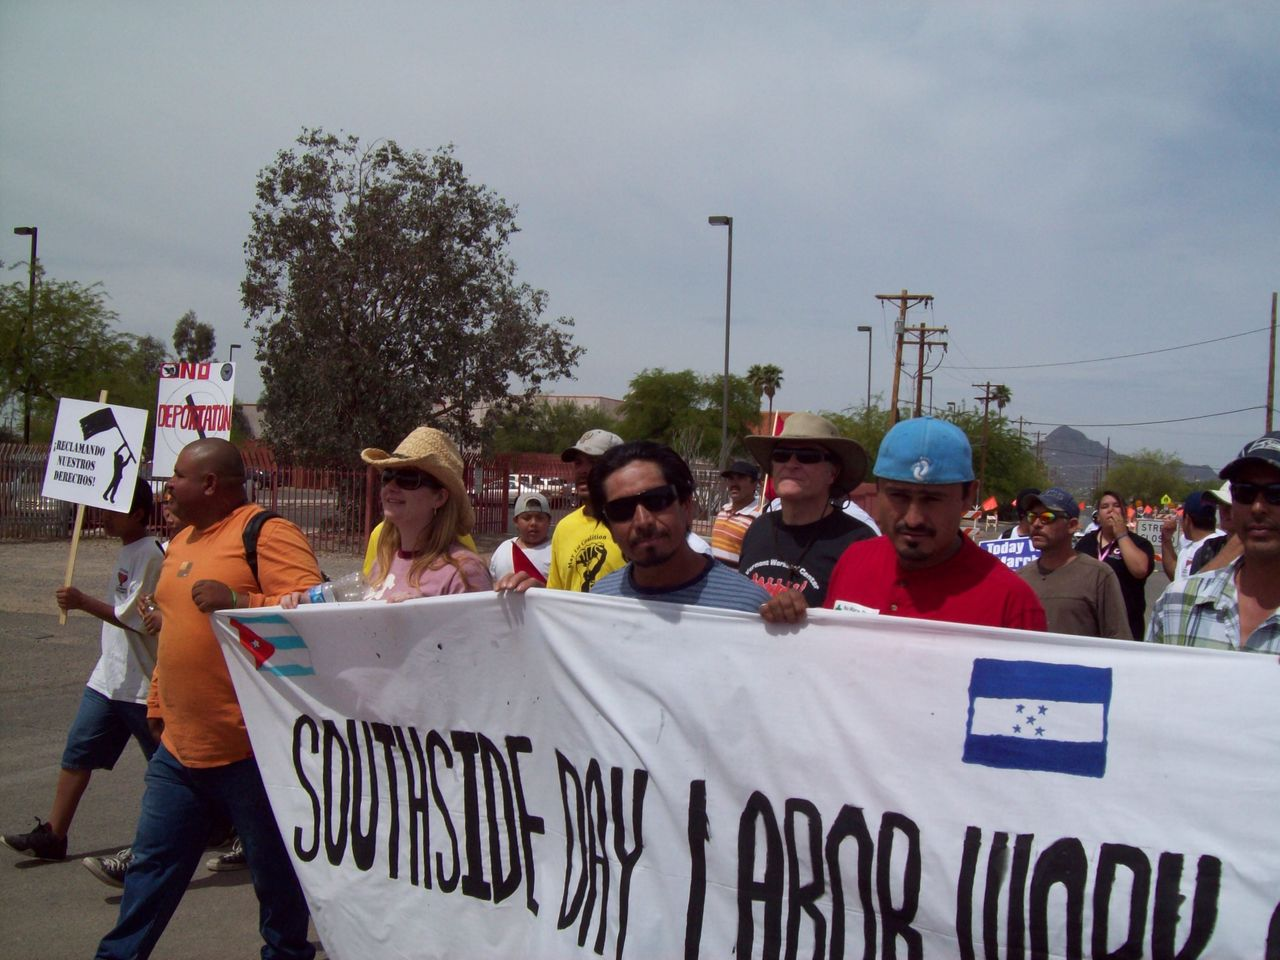 Rev. Alison Harrington (left, in pink) demonstrating with members with members of the Southside Worker Center against Arizona's anti-immigrant bill SB1070 in 2010.